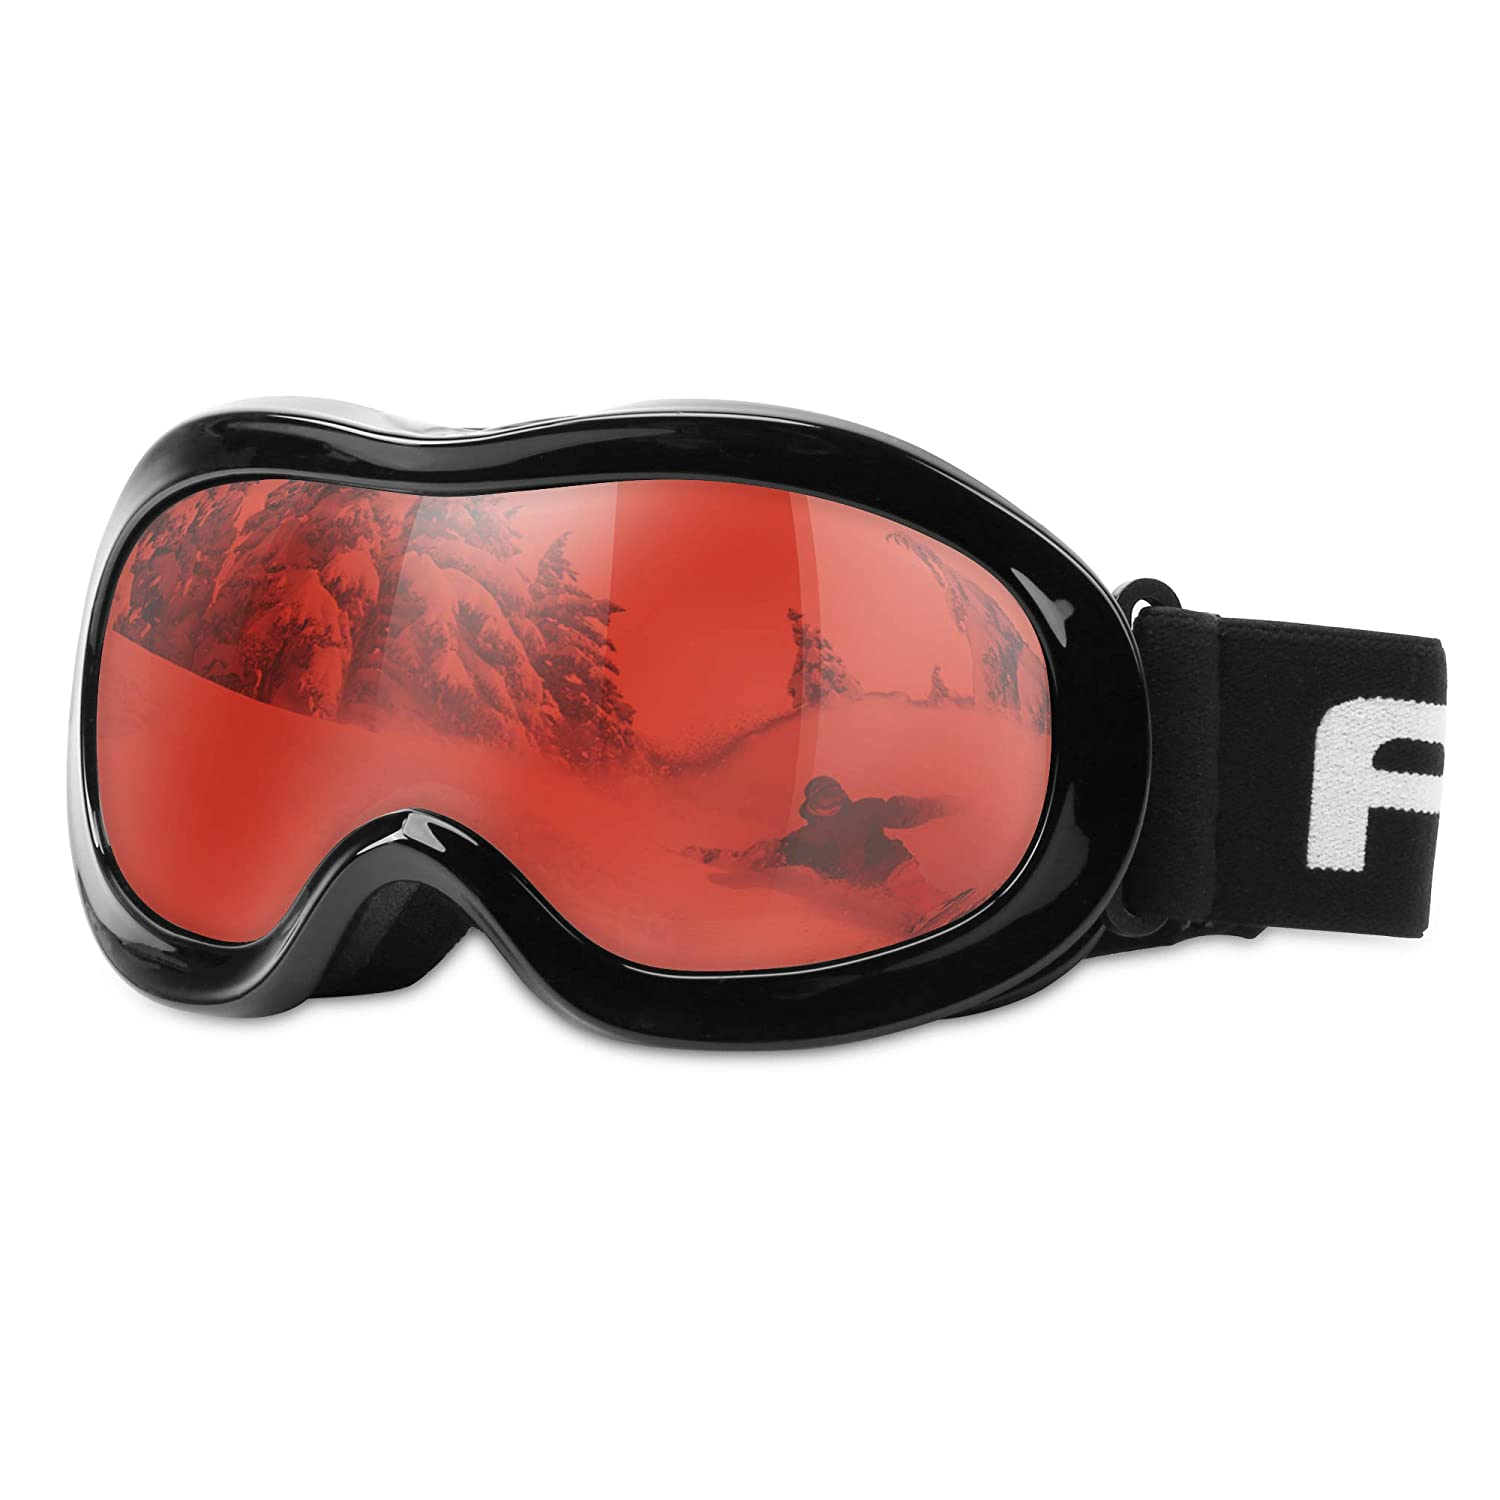 Kids Teenagers 100 Uv Protection Double Layer Spherical Lenses Akaso Explore Oregon Snow Goggles For Youth Vlt 16 5 Kids Ski Goggles Helmet Compatible Snowboard Goggles Anti Fog Black Frame Red Lens